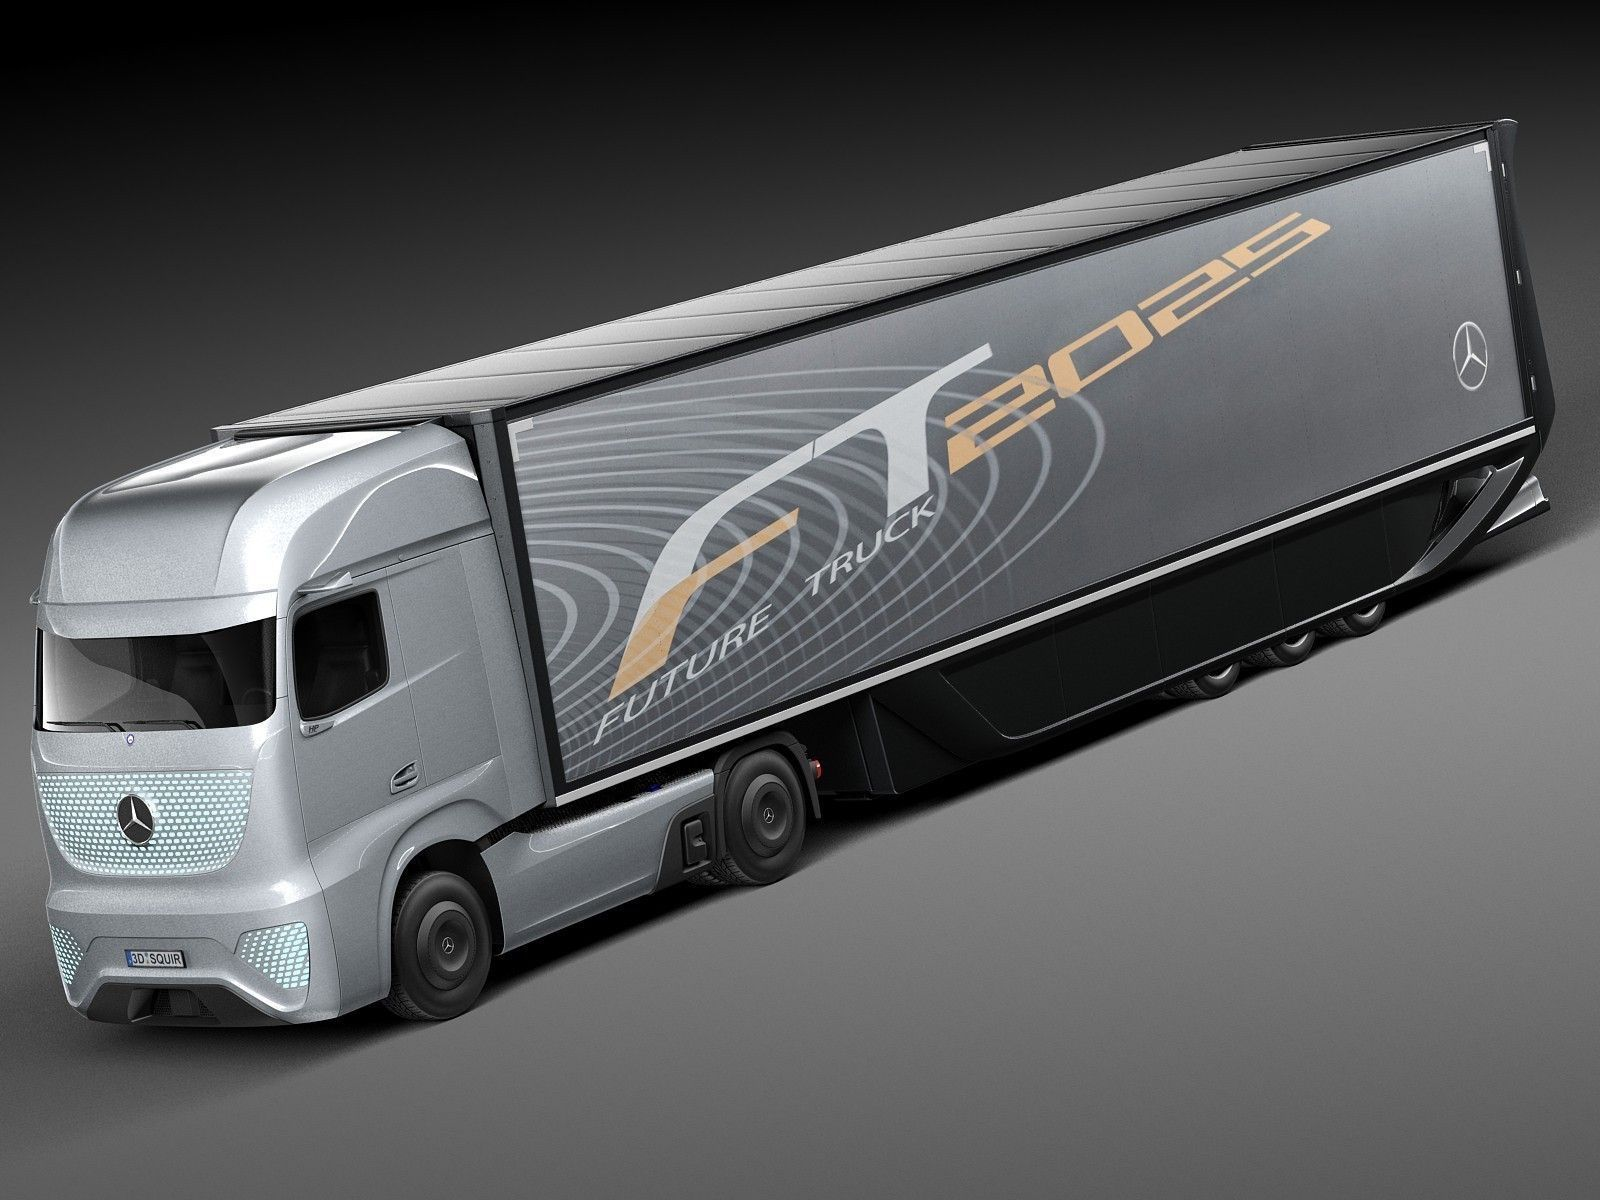 Mercedes benz ft 2025 future truck with tr 3d model max for Upcoming mercedes benz models